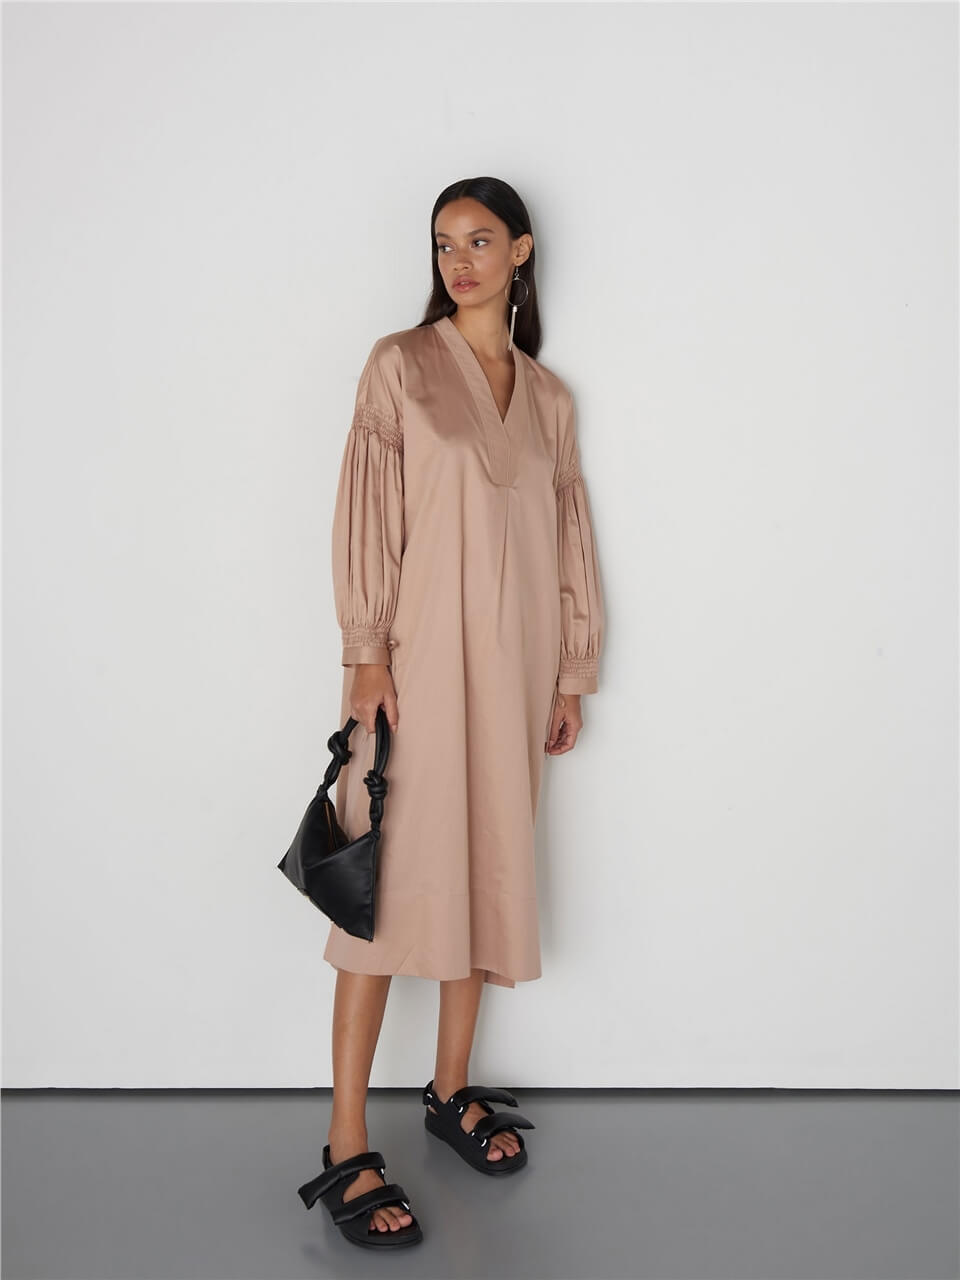 Long Sleeved Powder Colored Cotton Dress